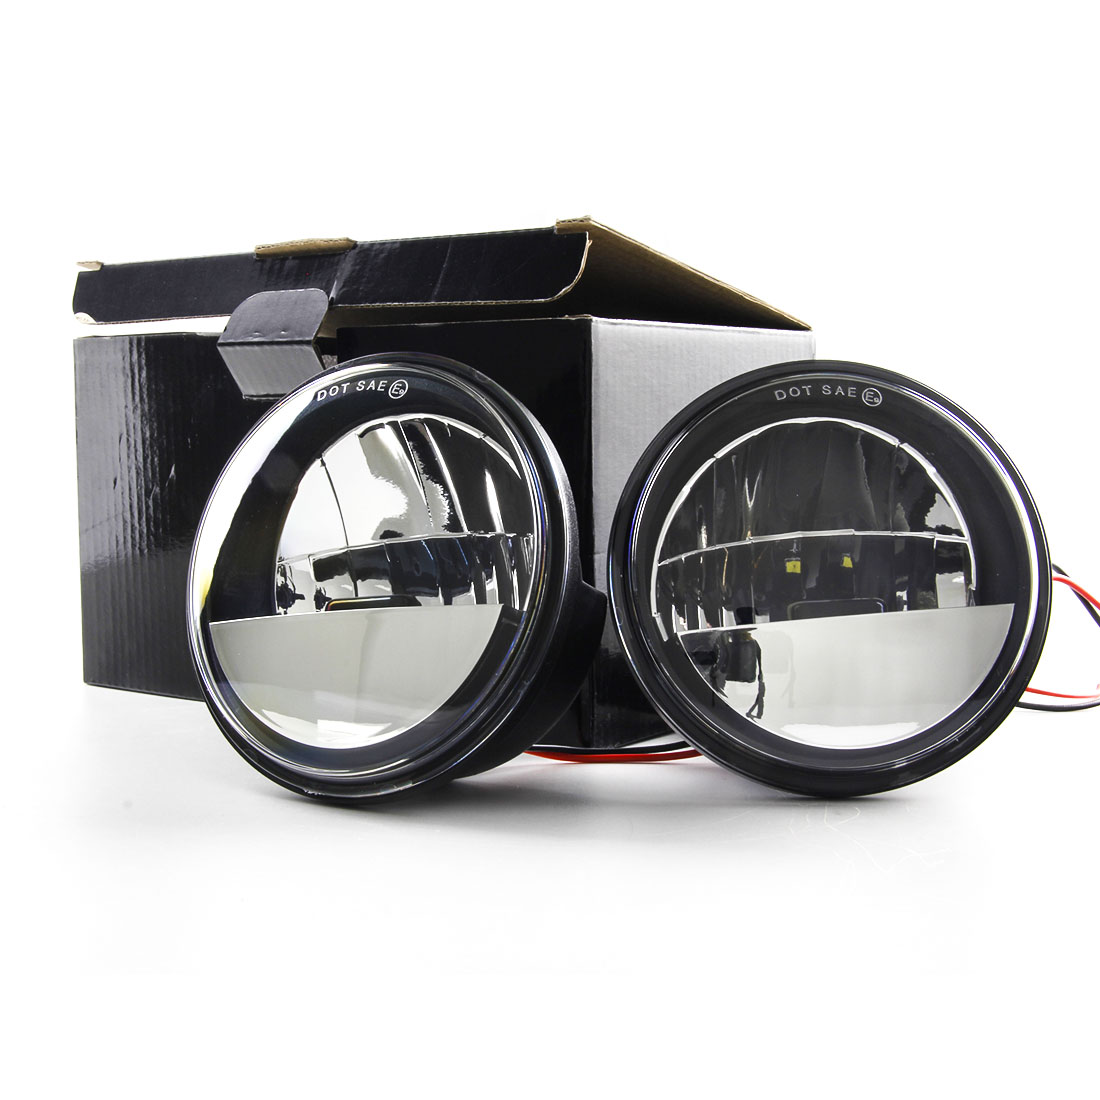 4.5 inch Round Fog Light LED Front 4 1/2 Auxiliary Spot Passing Driving Lamp Projecot Lights for Harley Davidson Daymaker